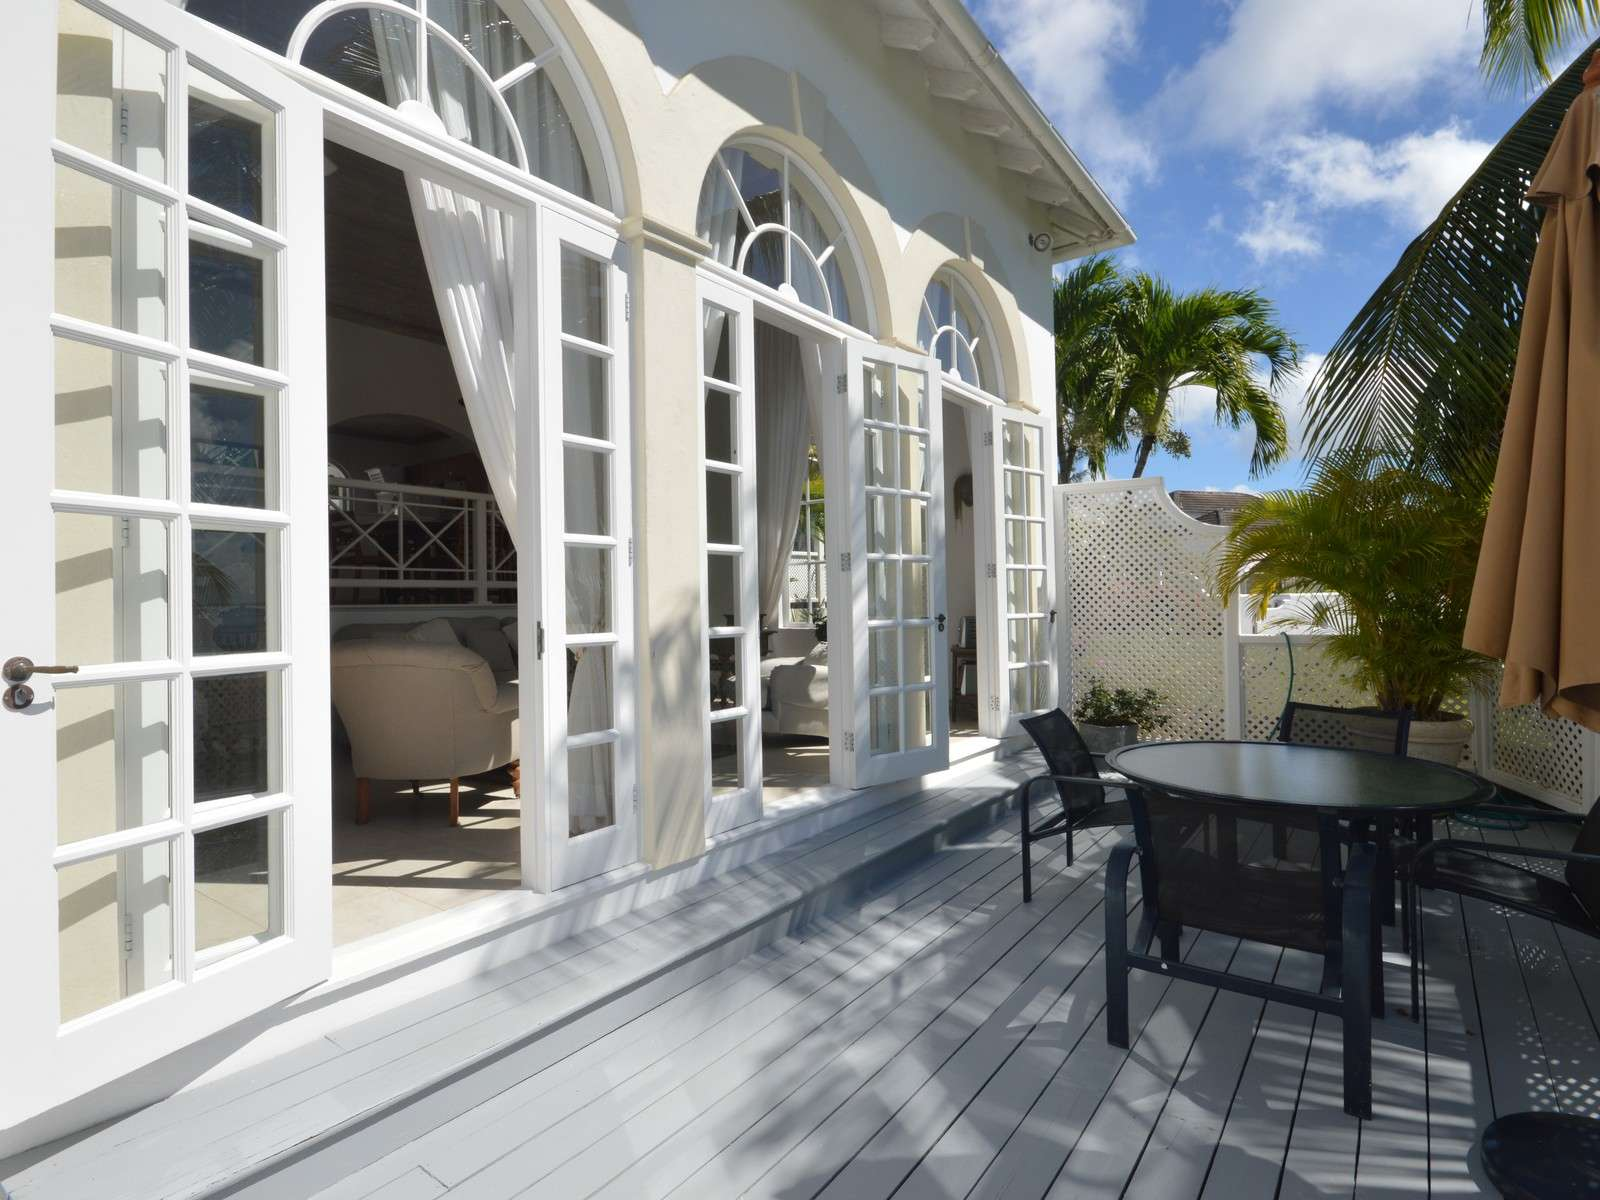 - Cassia Heights 27 - Image 1/20